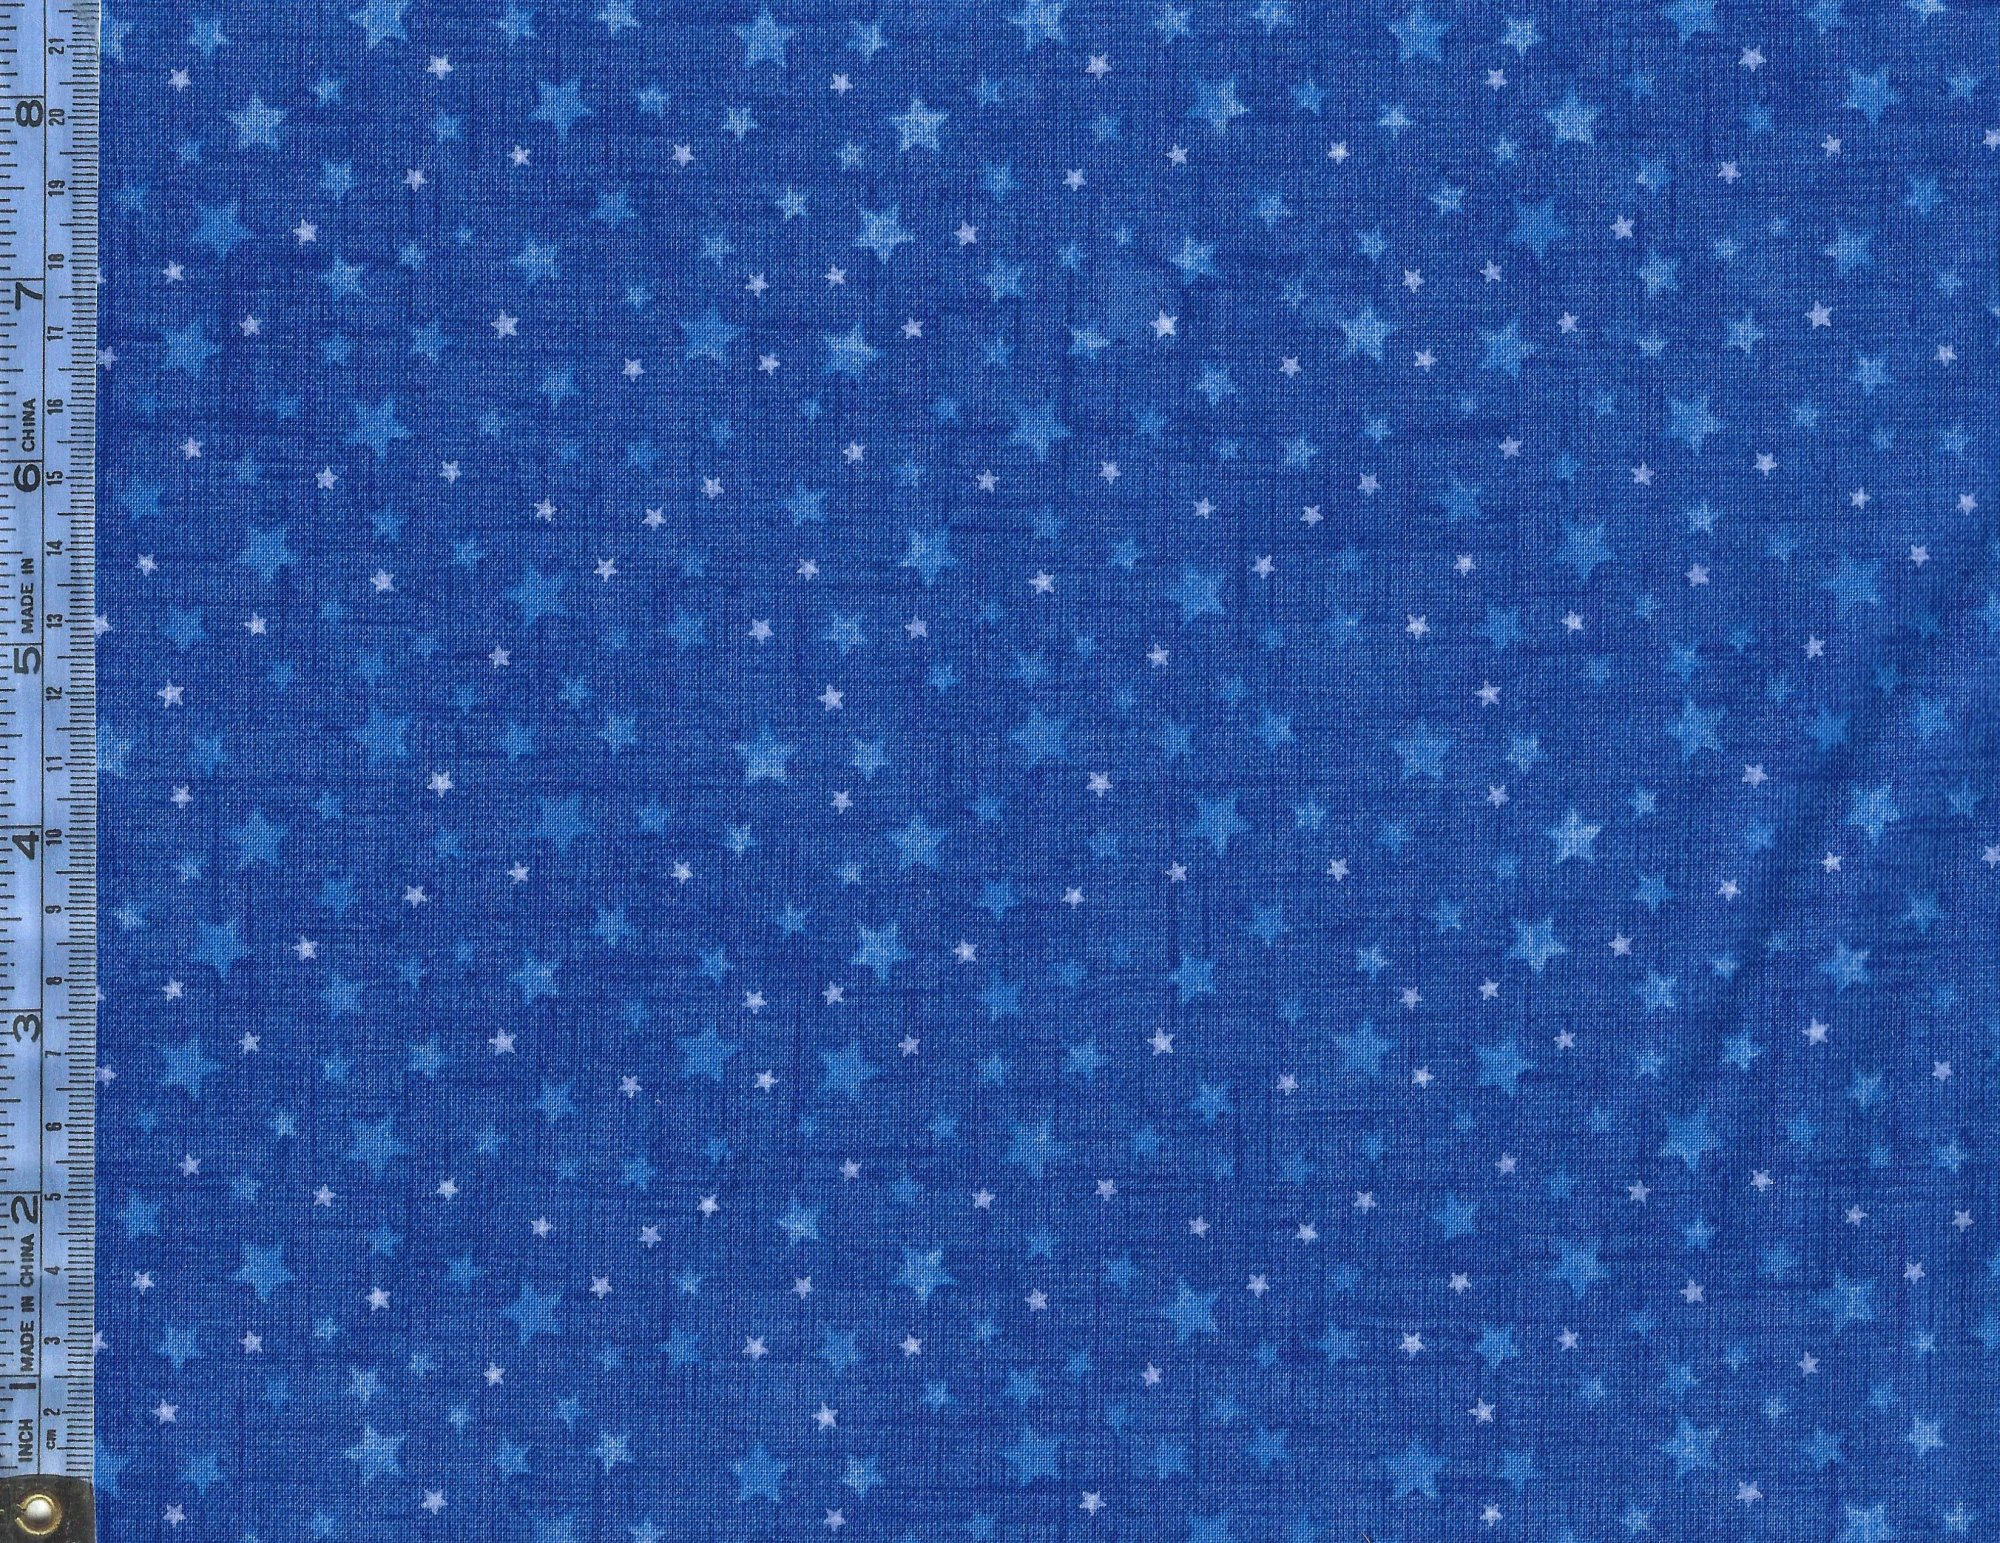 Silent Night - (21659-44-midblue) light blue and white stars on textured blue background